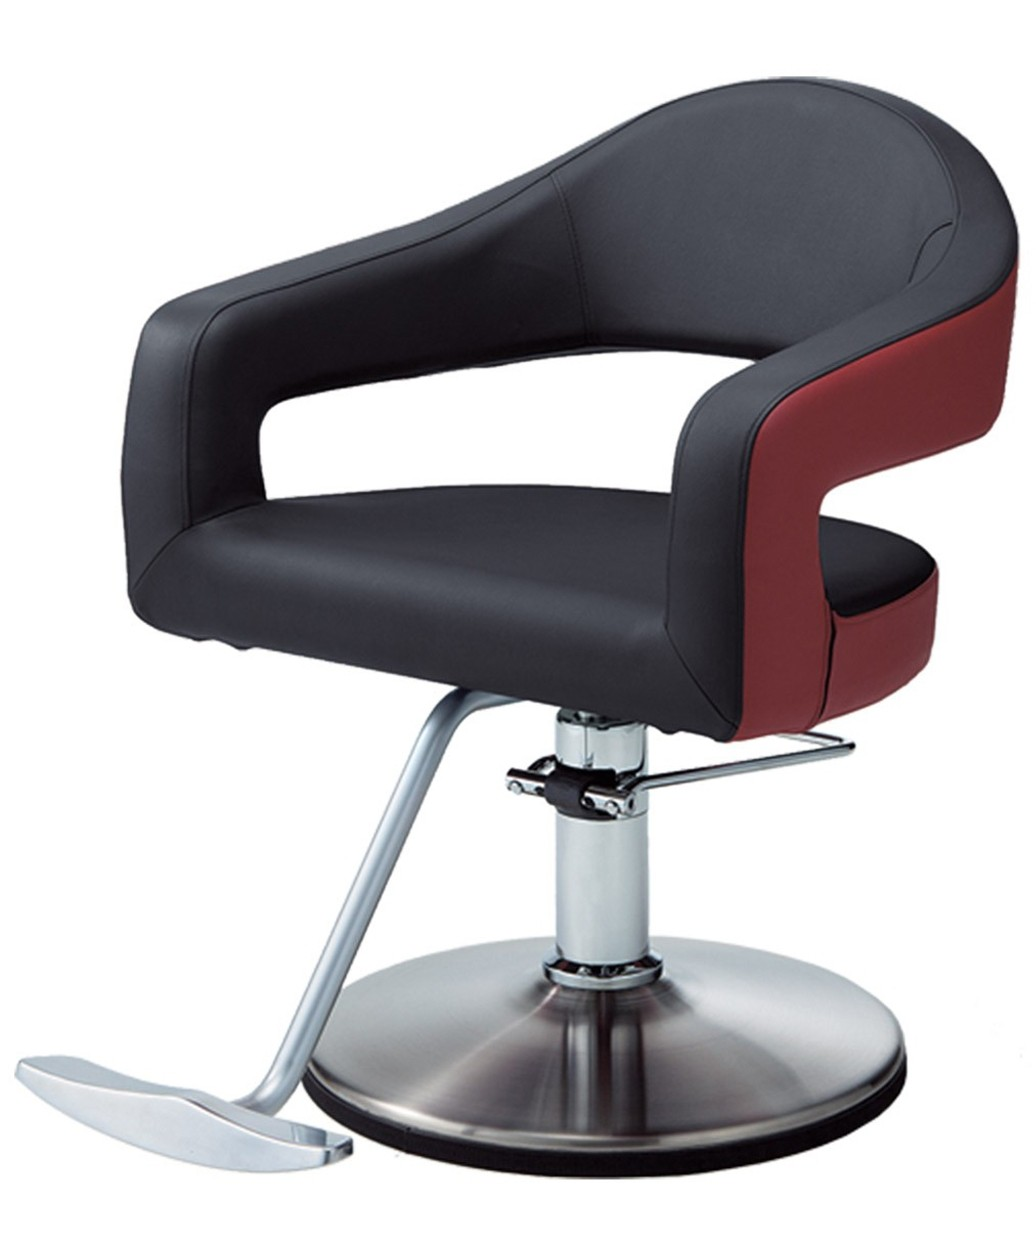 ST-N50 Knoll Styling Chair